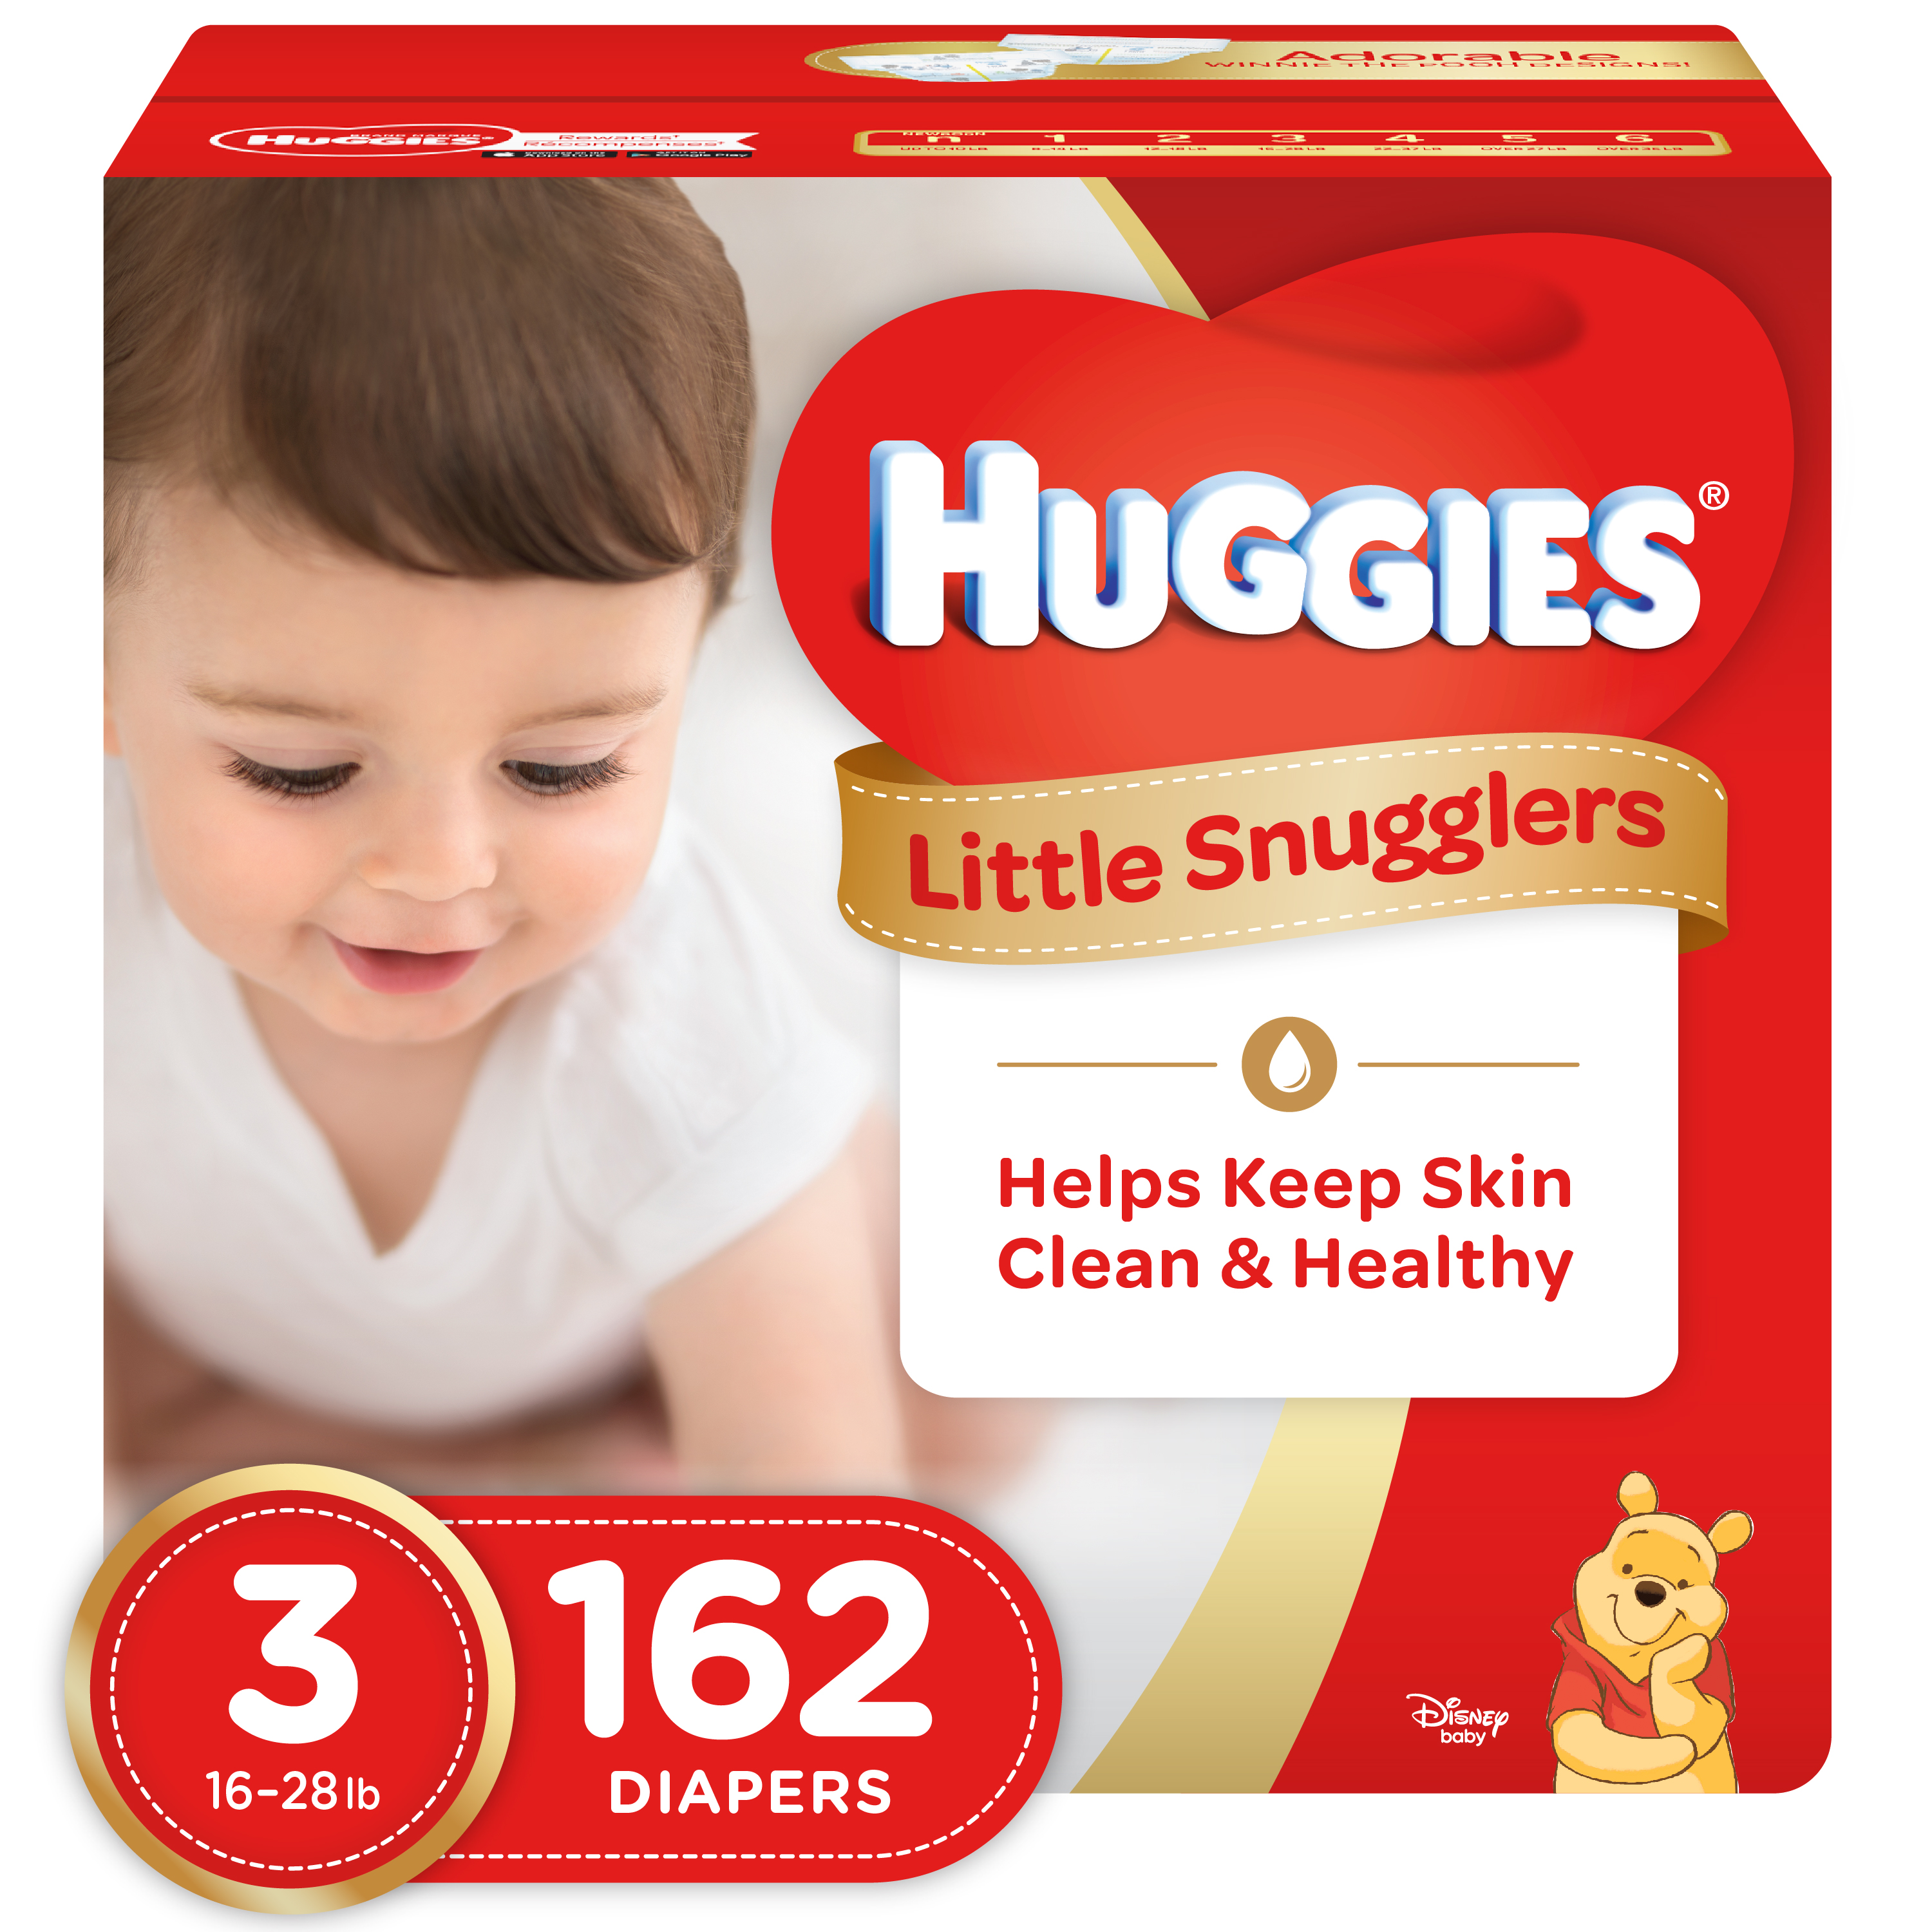 HUGGIES Little Snugglers Diapers (Choose Size and Count) Size 3, 162 Diapers